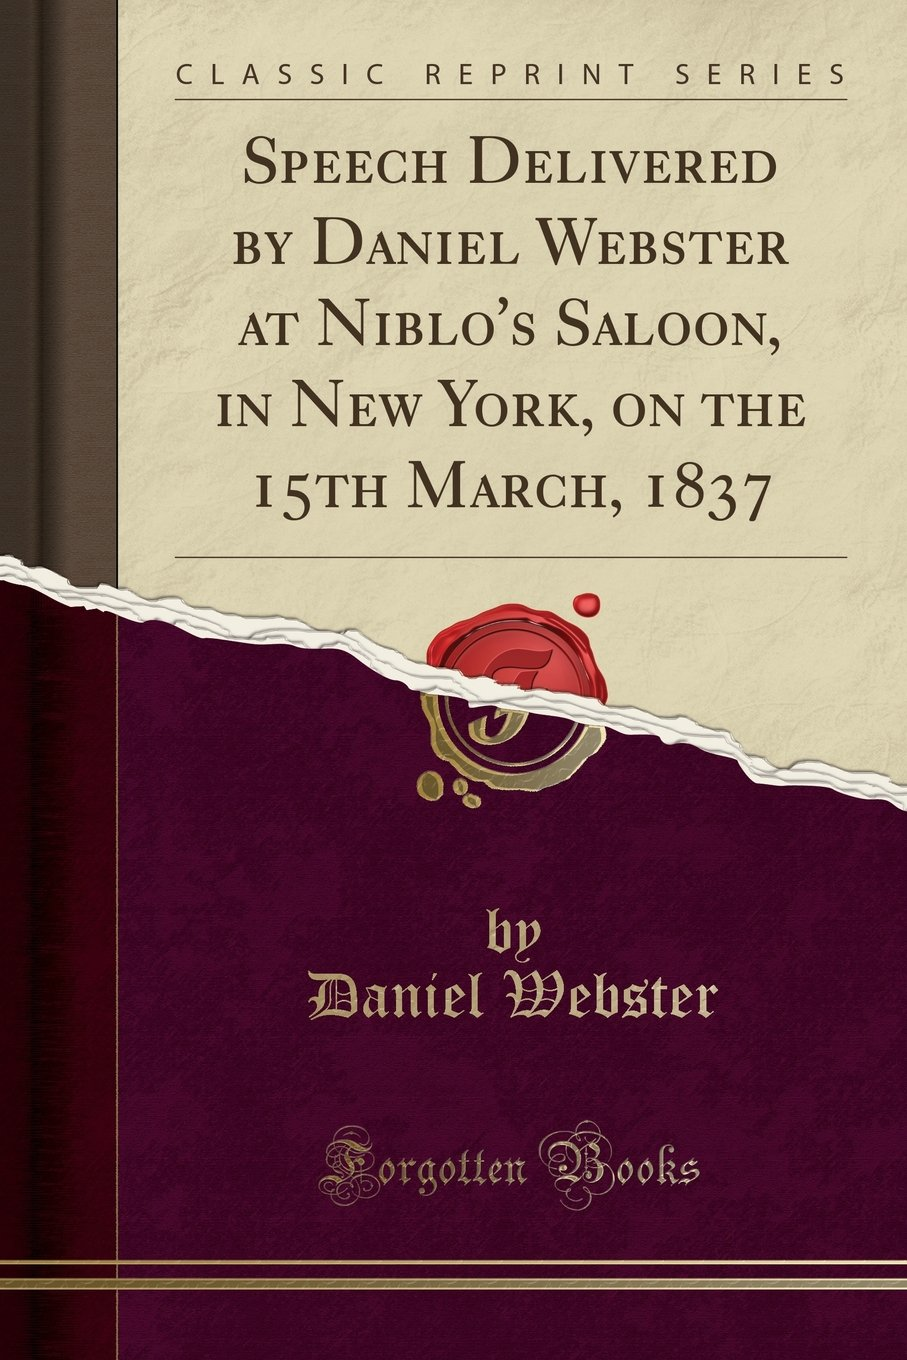 Speech Delivered by Daniel Webster at Niblo's Saloon, in New York, on the 15th March, 1837 (Classic Reprint) PDF ePub fb2 ebook